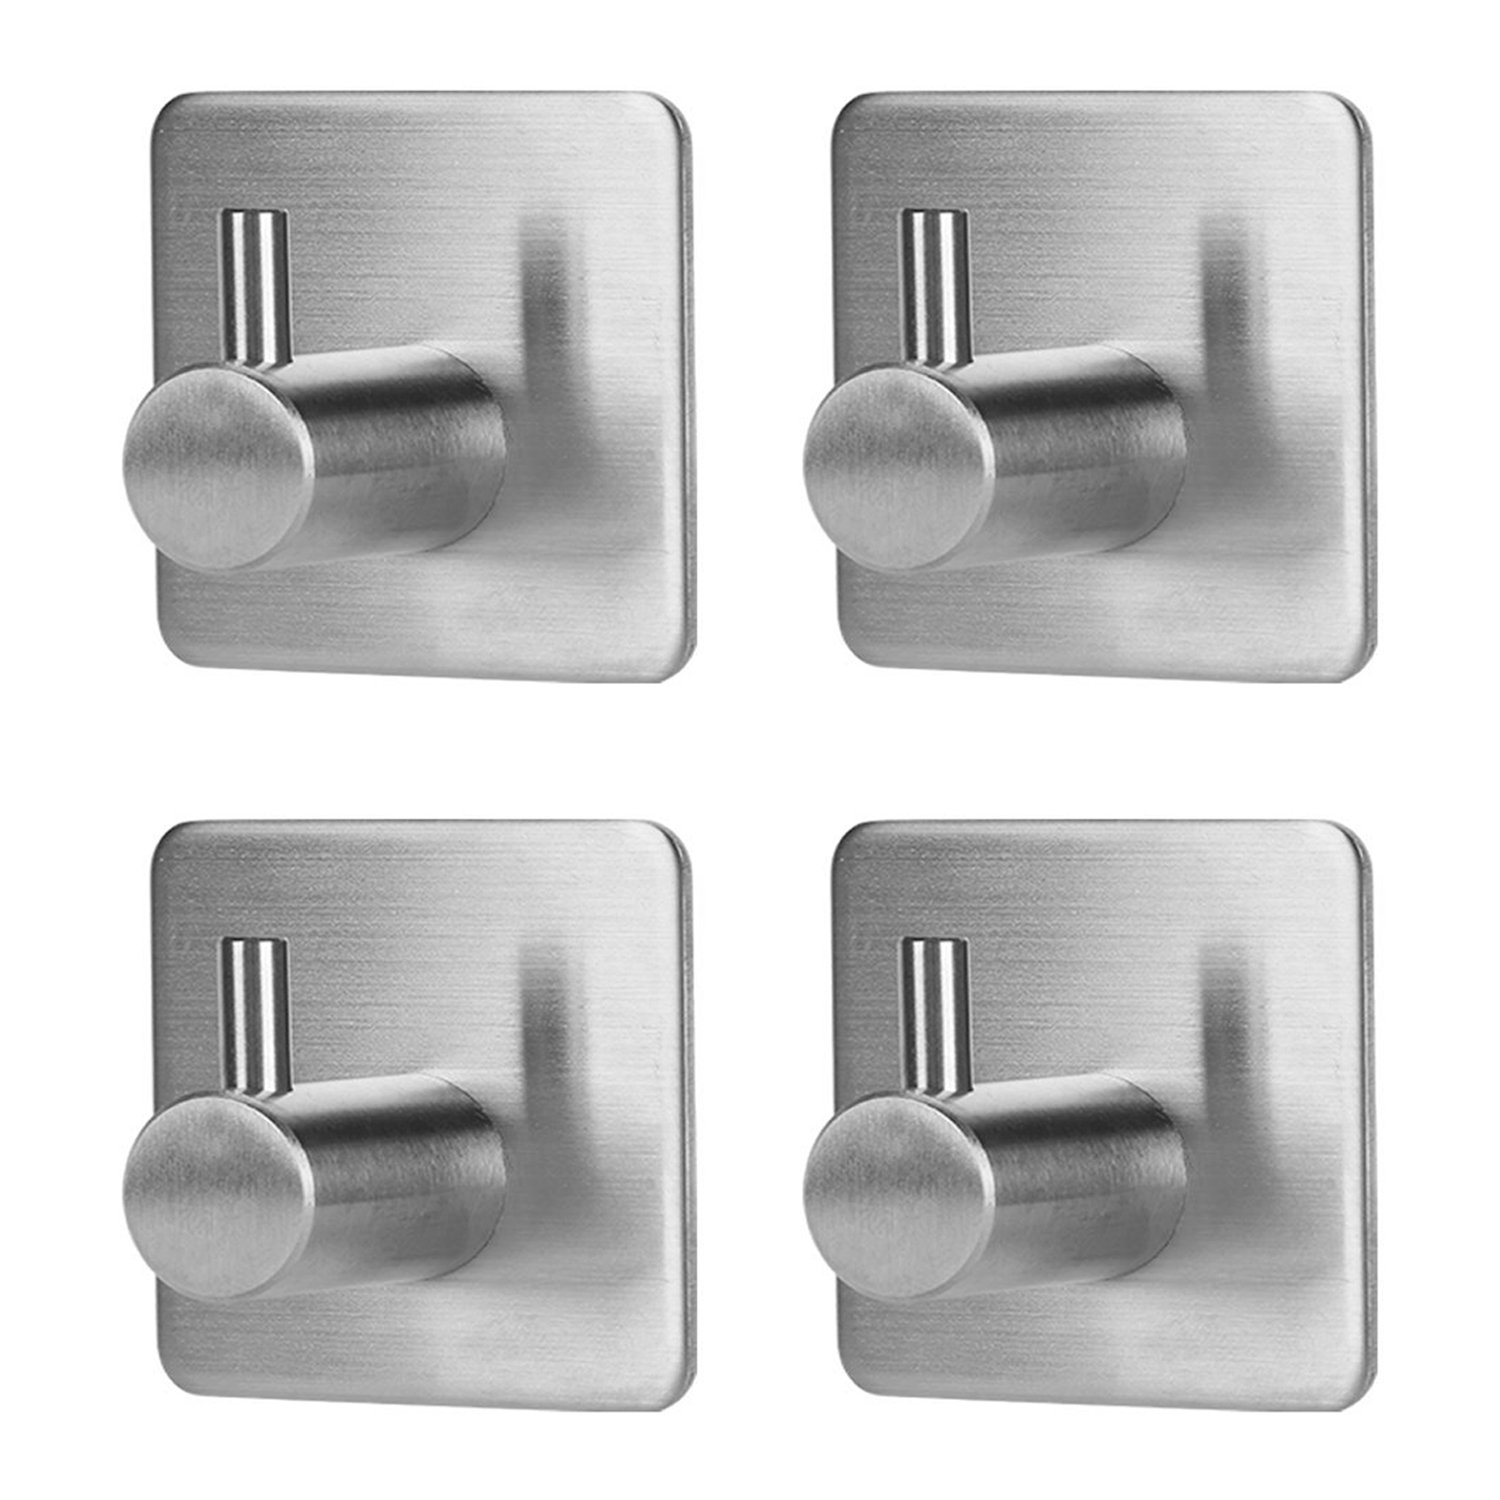 Jekoo Towel Hooks Self Adhesive, Heavy Duty Coat Hooks with Stainless Steel Ultra Strong Waterproof for Bathroom Kitchen and Garage Organizer - (4 Pack) by Jekoo